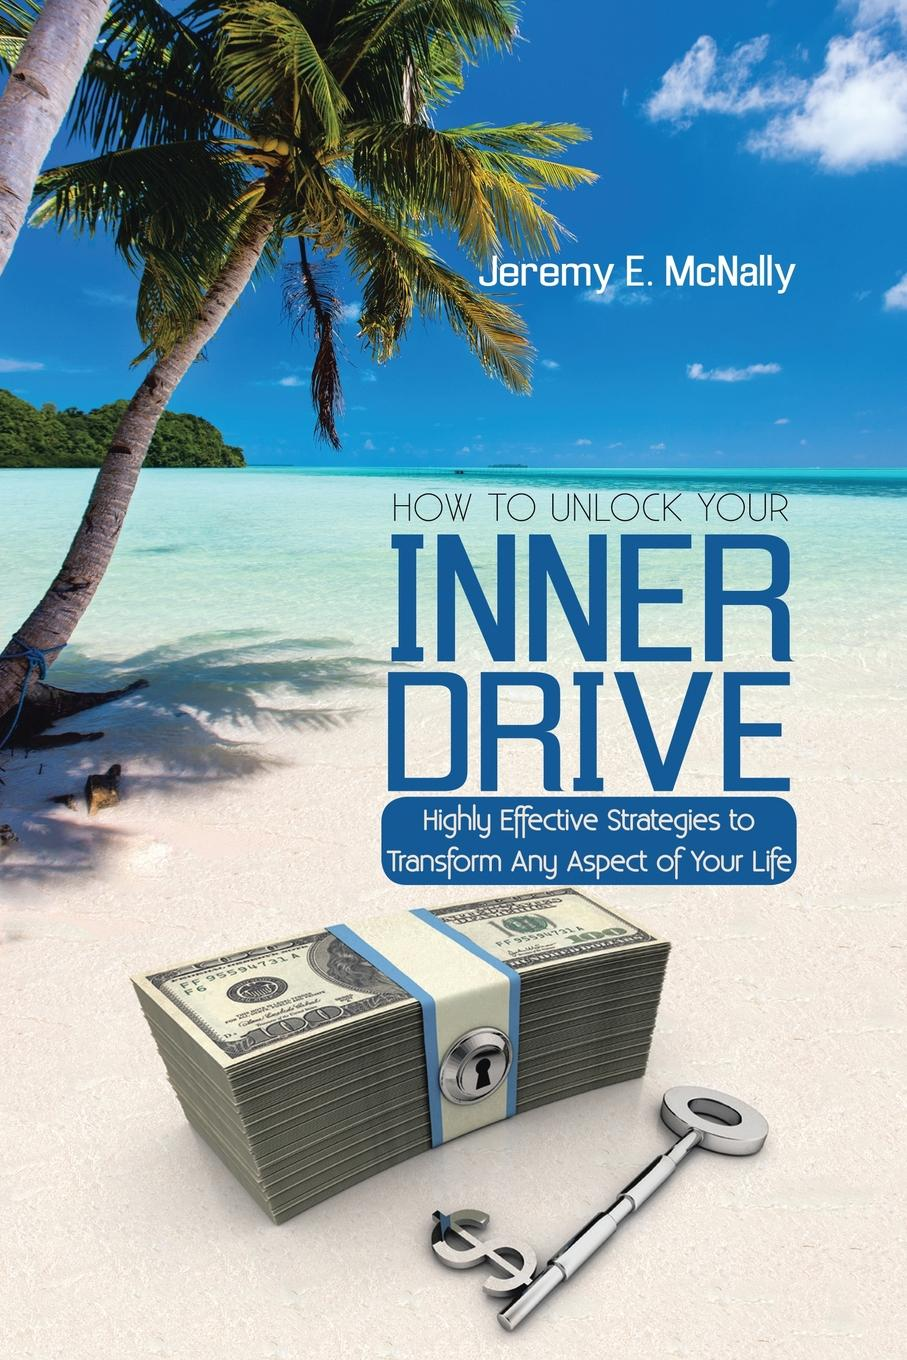 Jeremy E. McNally How to Unlock Your Inner Drive. Highly Effective Strategies to Transform Any Aspect of Your Life josh linkner disciplined dreaming a proven system to drive breakthrough creativity